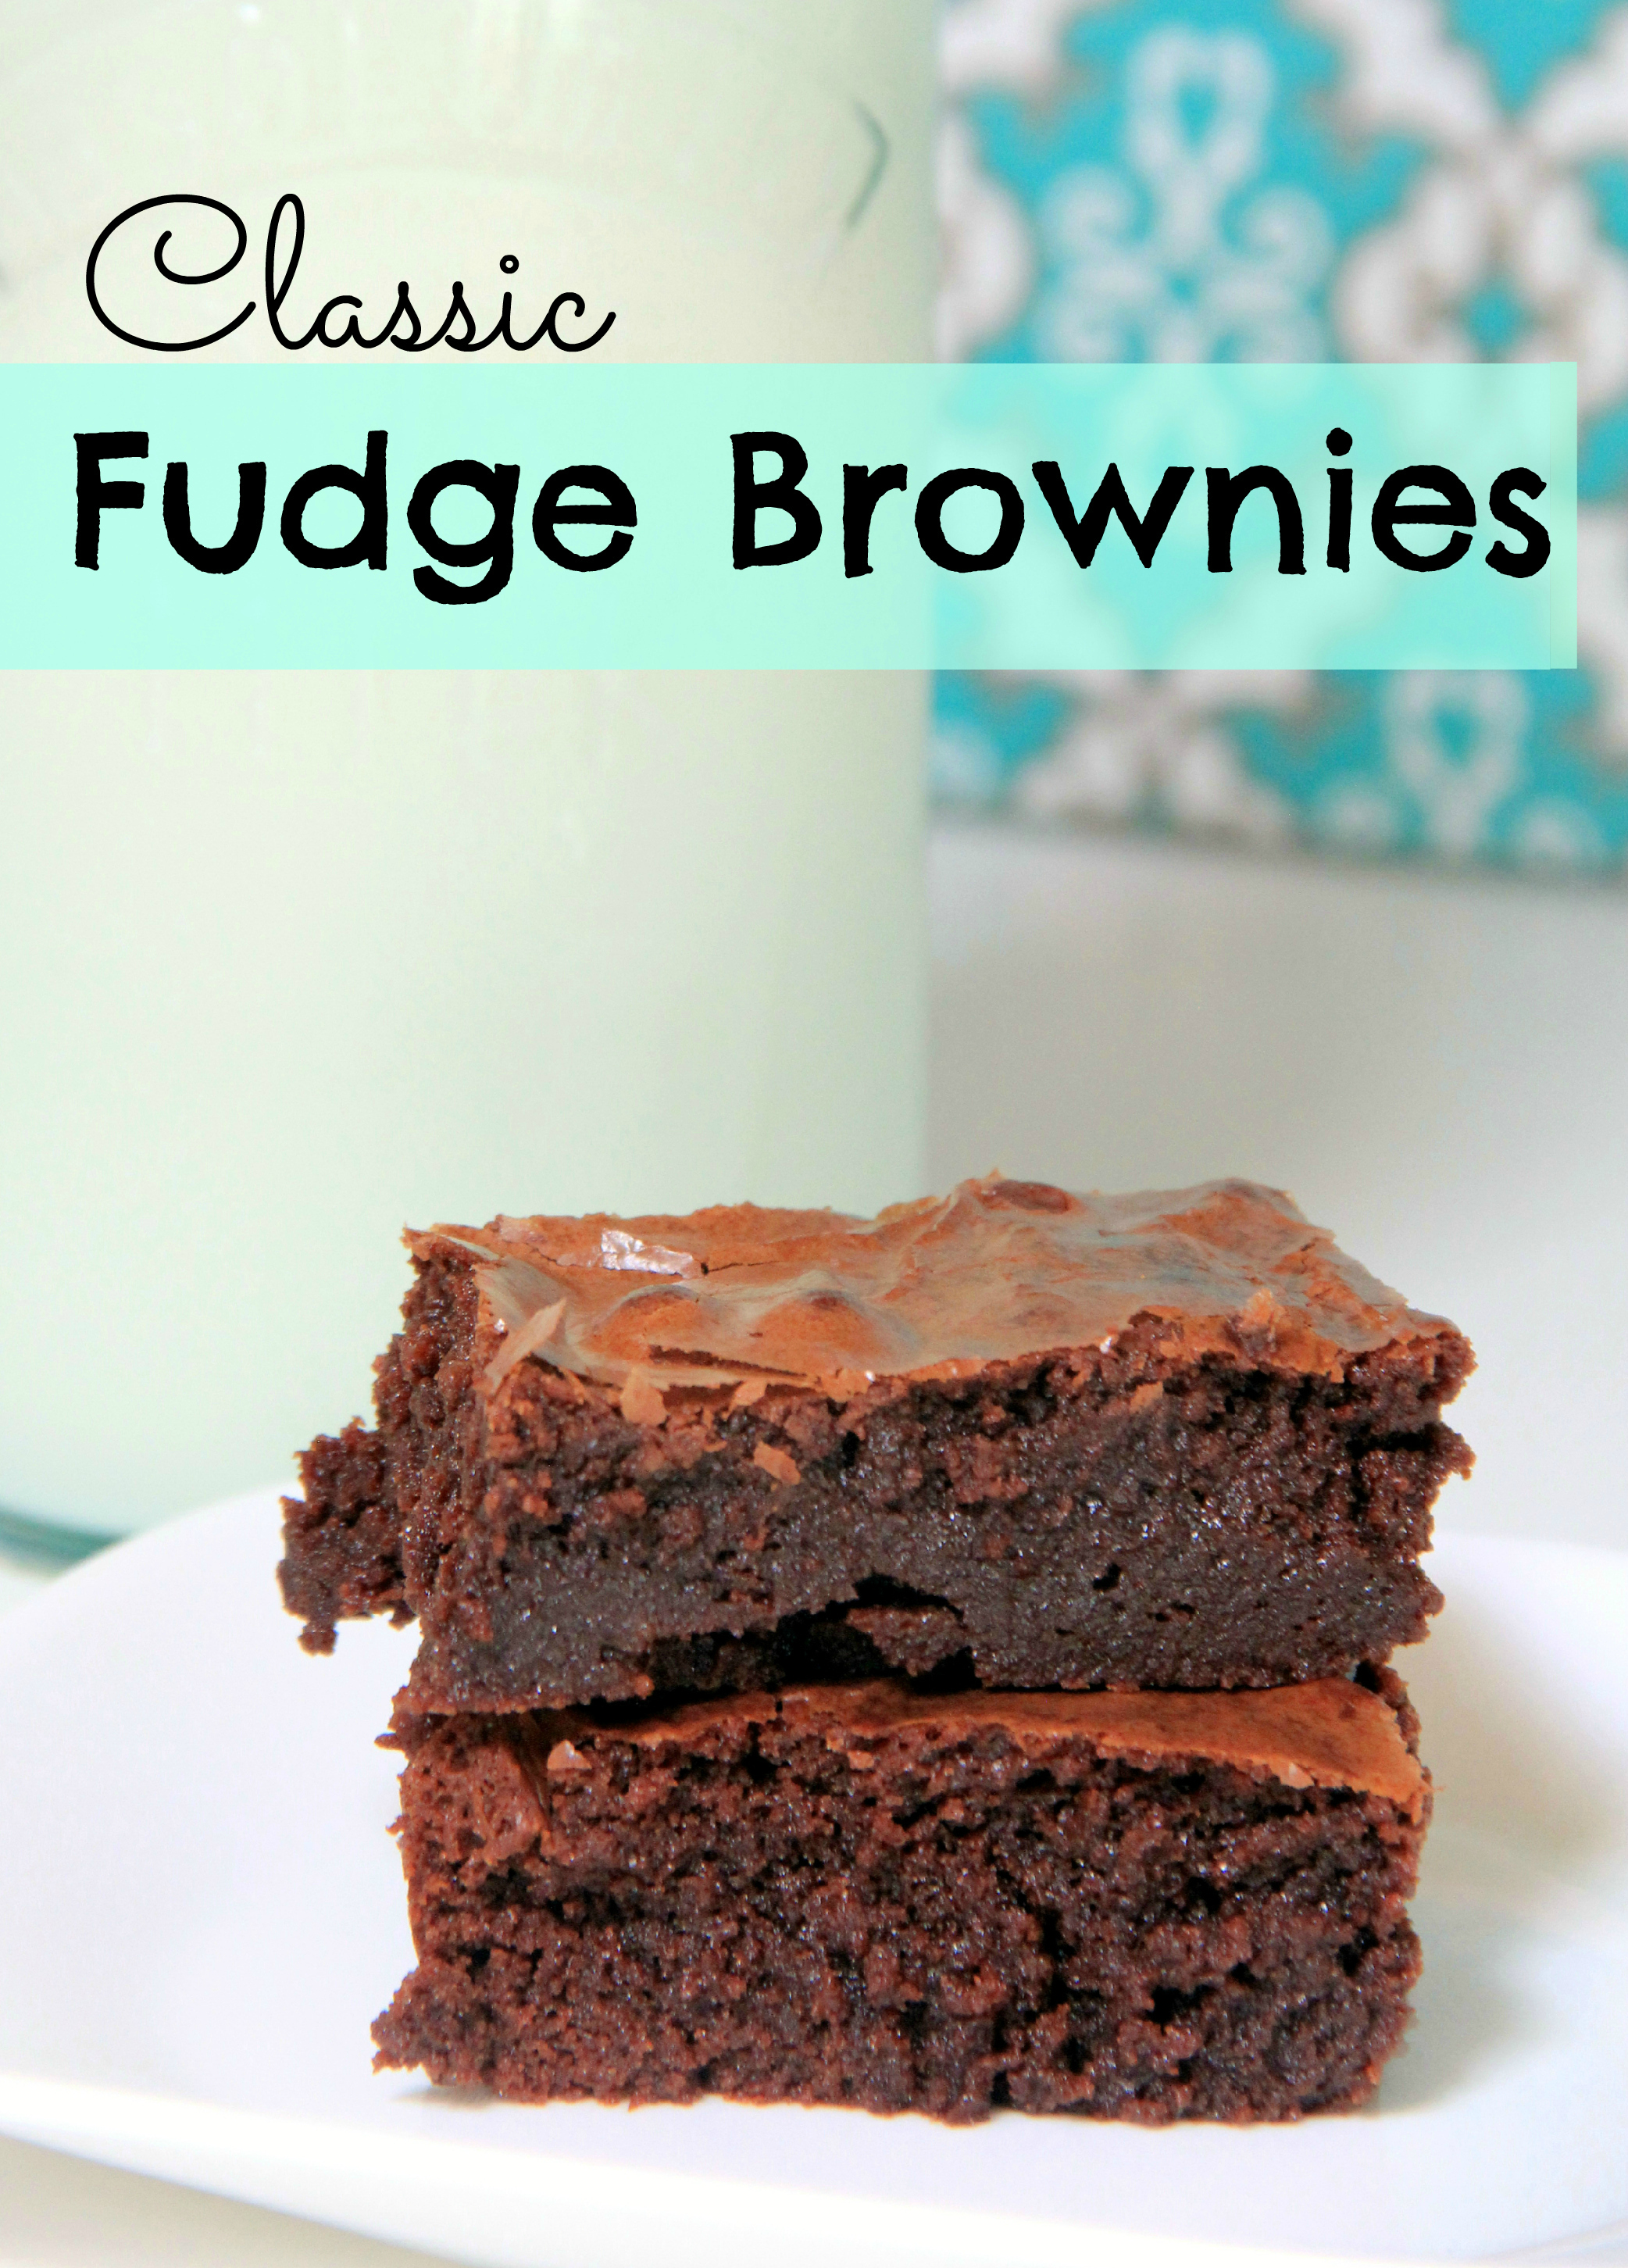 Classic Fudge Brownies - Food Contributor - Organize and Decorate ...